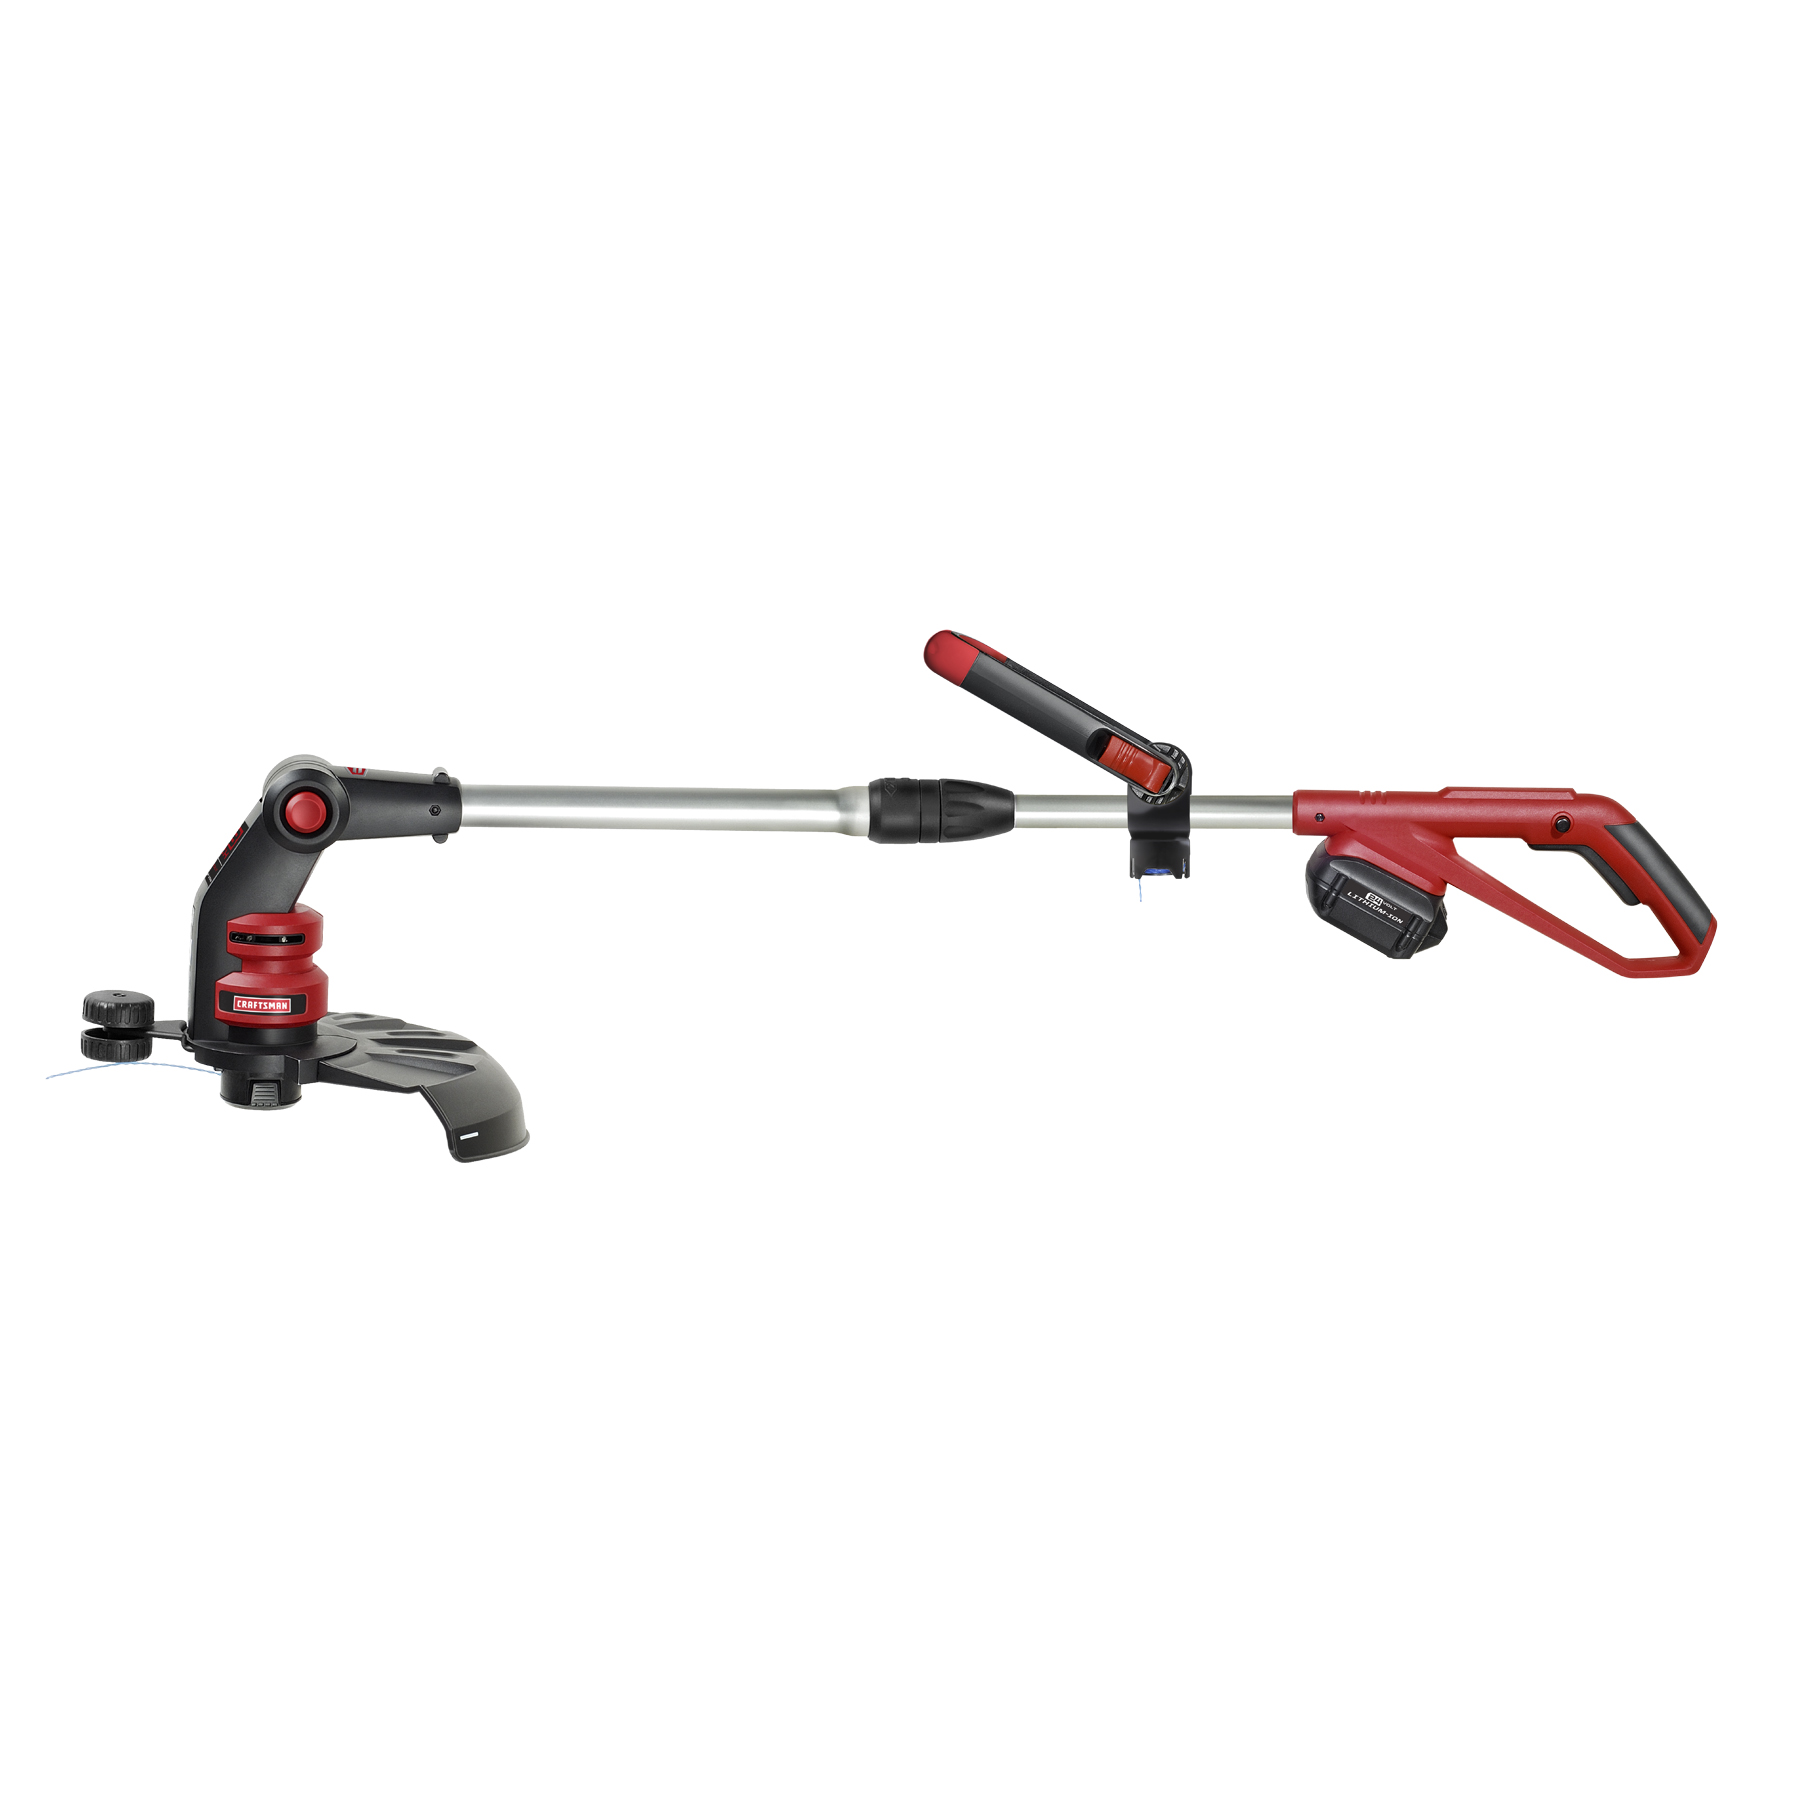 "Craftsman 13"" - 24 Volt Cordless Grass Trimmer/Edger - 74324"